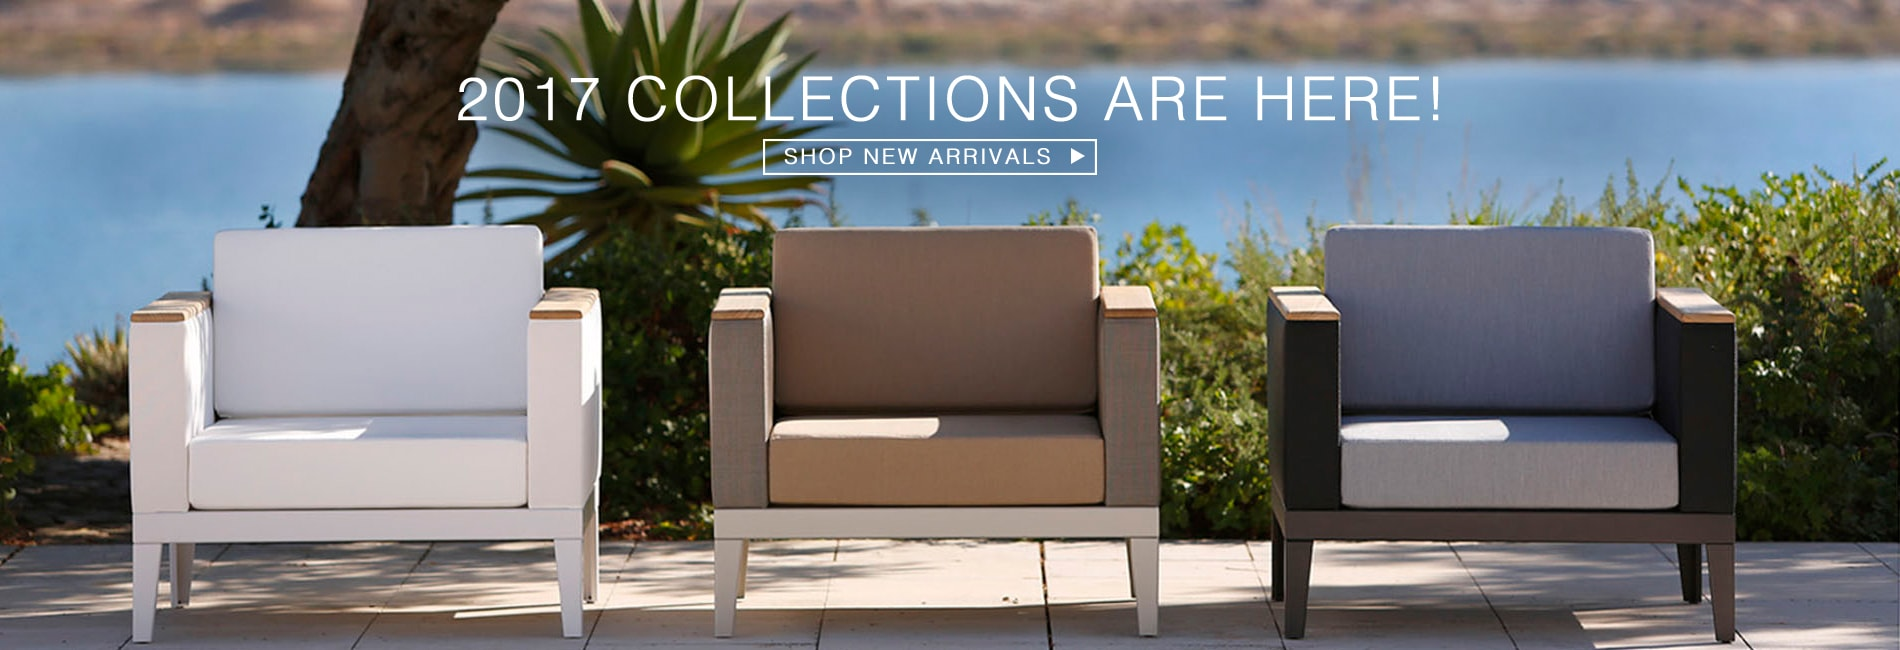 Shop New 2017 Collections